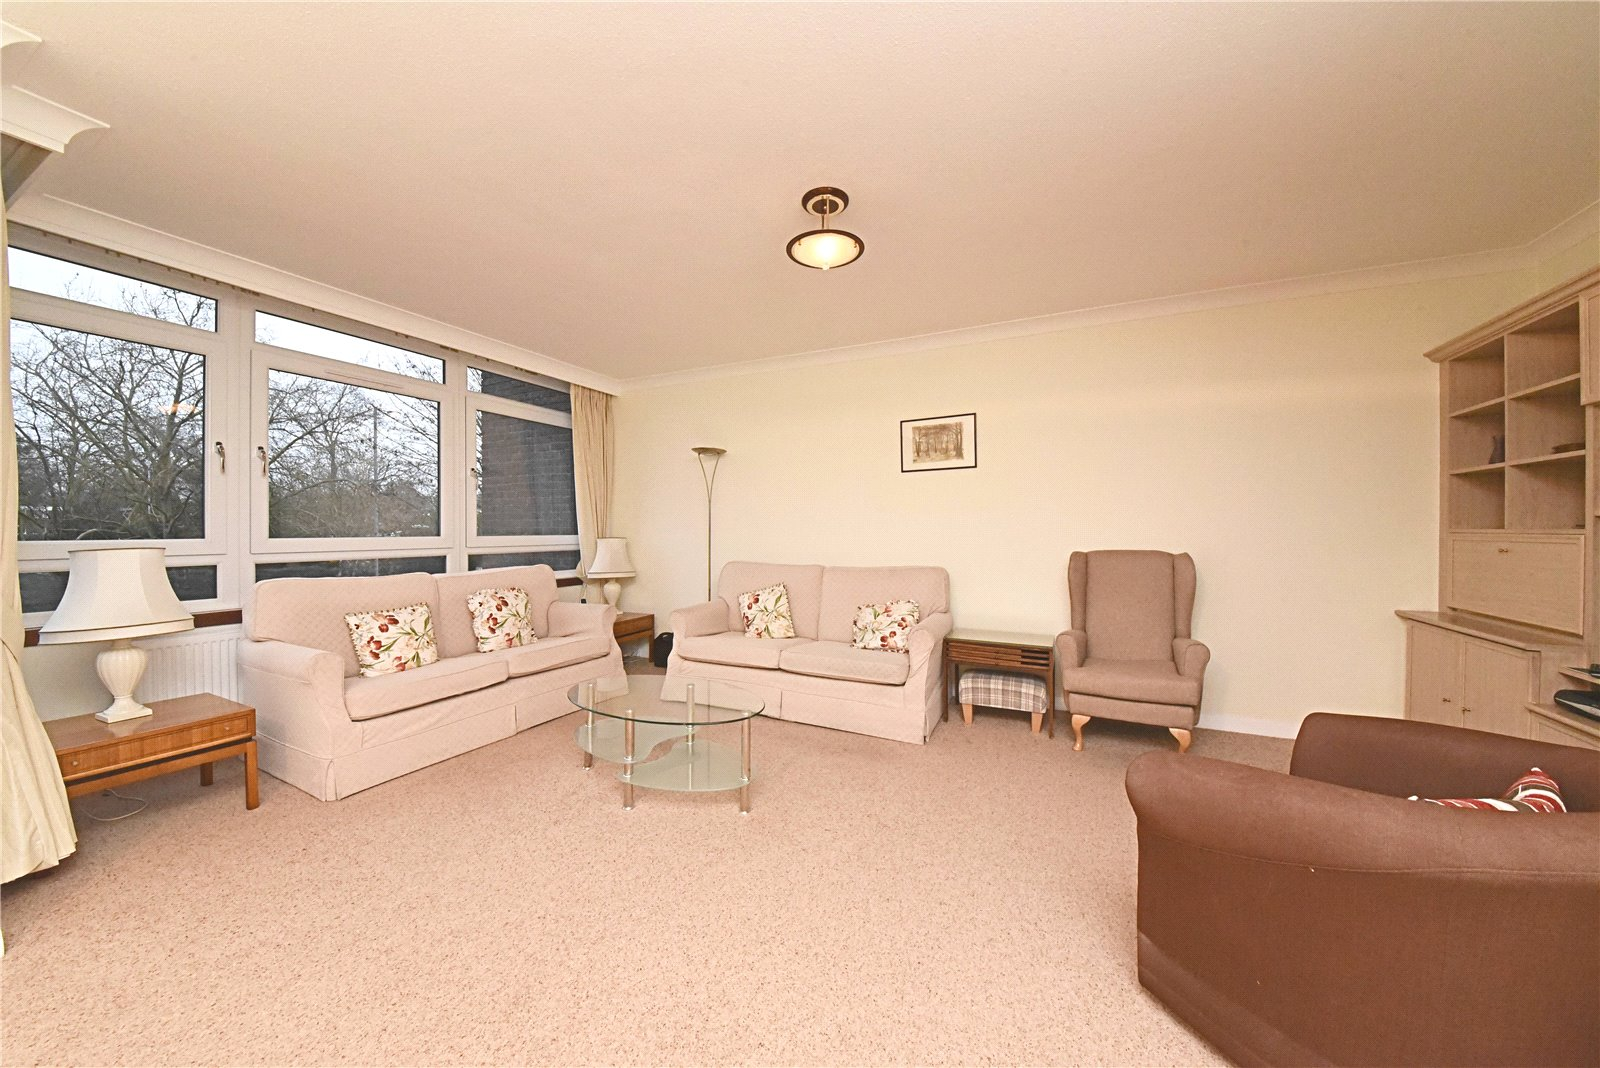 2 bed apartment for sale in Hendon, NW4 1RB  - Property Image 5